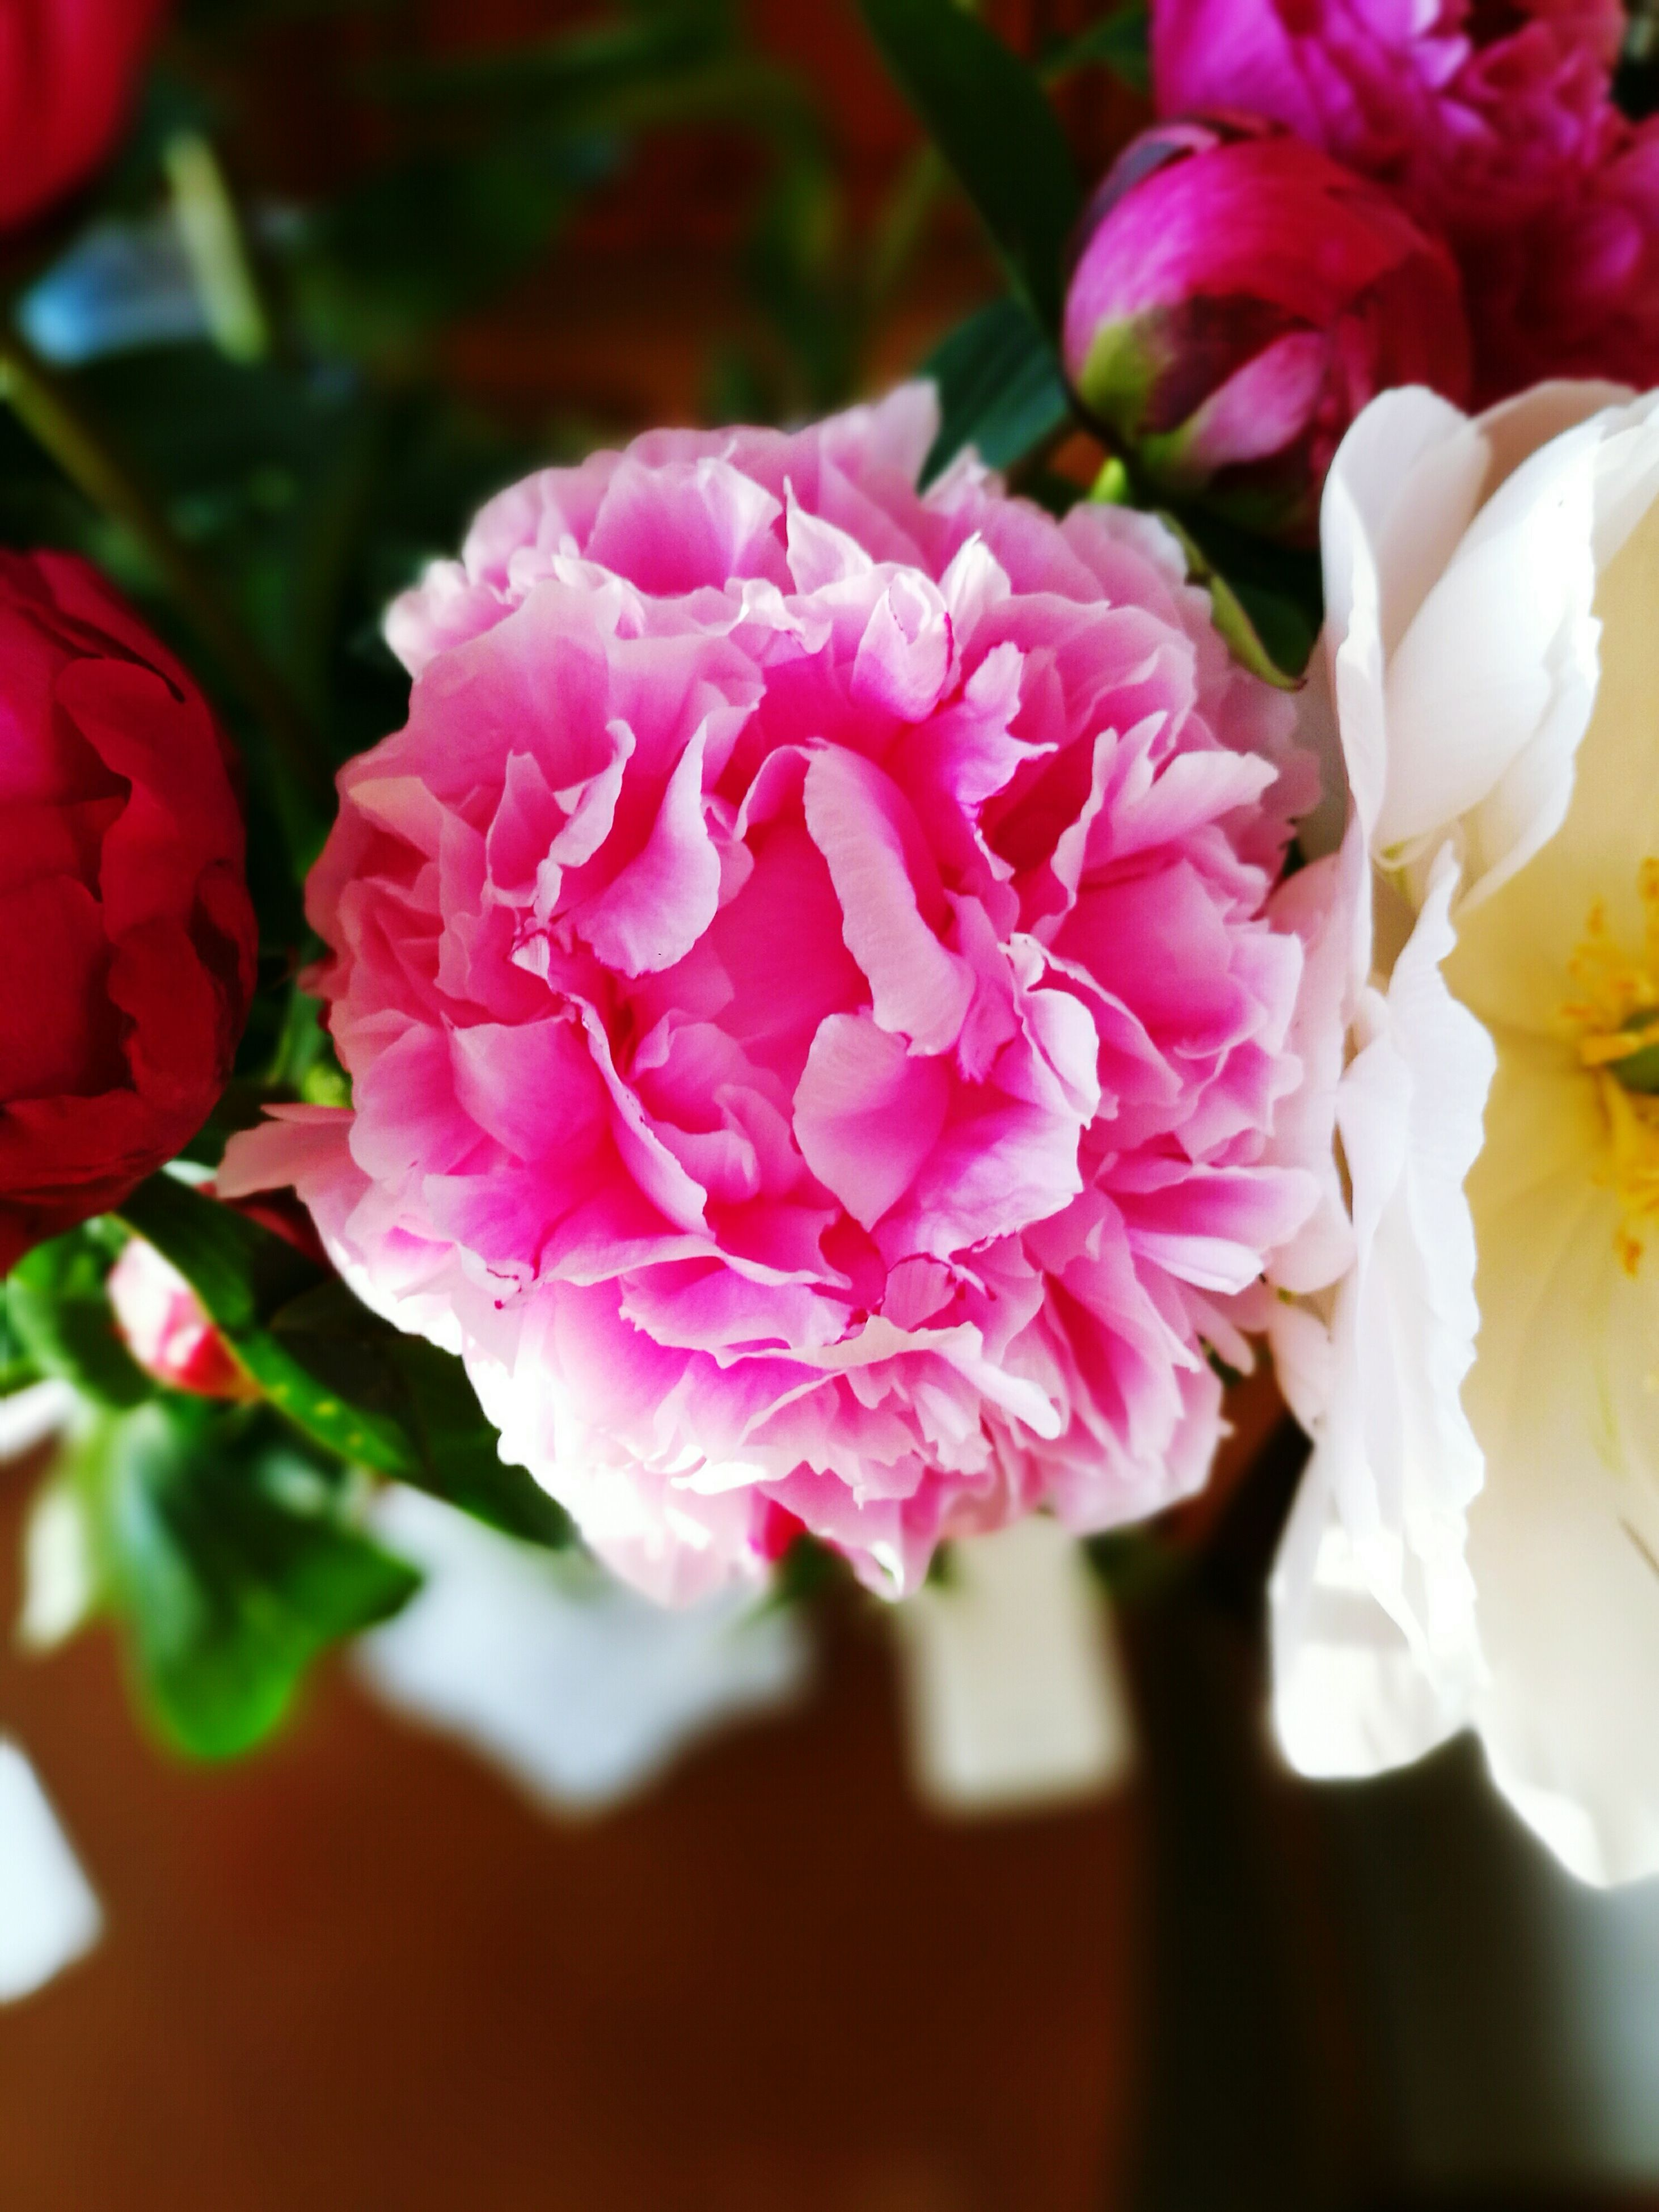 flower, freshness, petal, fragility, flower head, beauty in nature, growth, close-up, pink color, nature, blooming, bunch of flowers, rose - flower, blossom, focus on foreground, in bloom, pink, selective focus, white color, plant